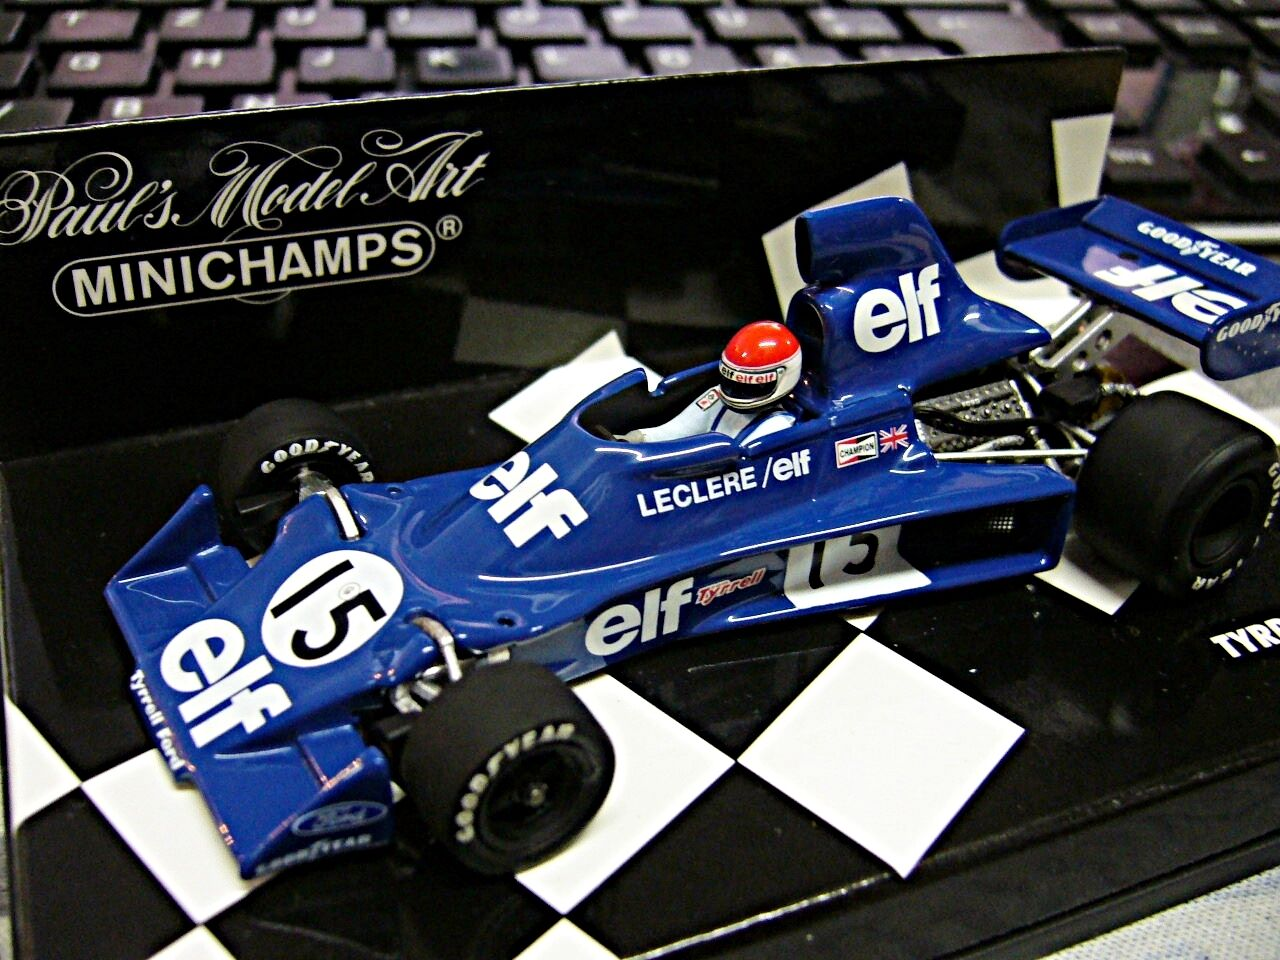 F1 tyrrell ford 007 1975  16 Leclere onze 1 720 LIMITED MINICHAMPS 1 43